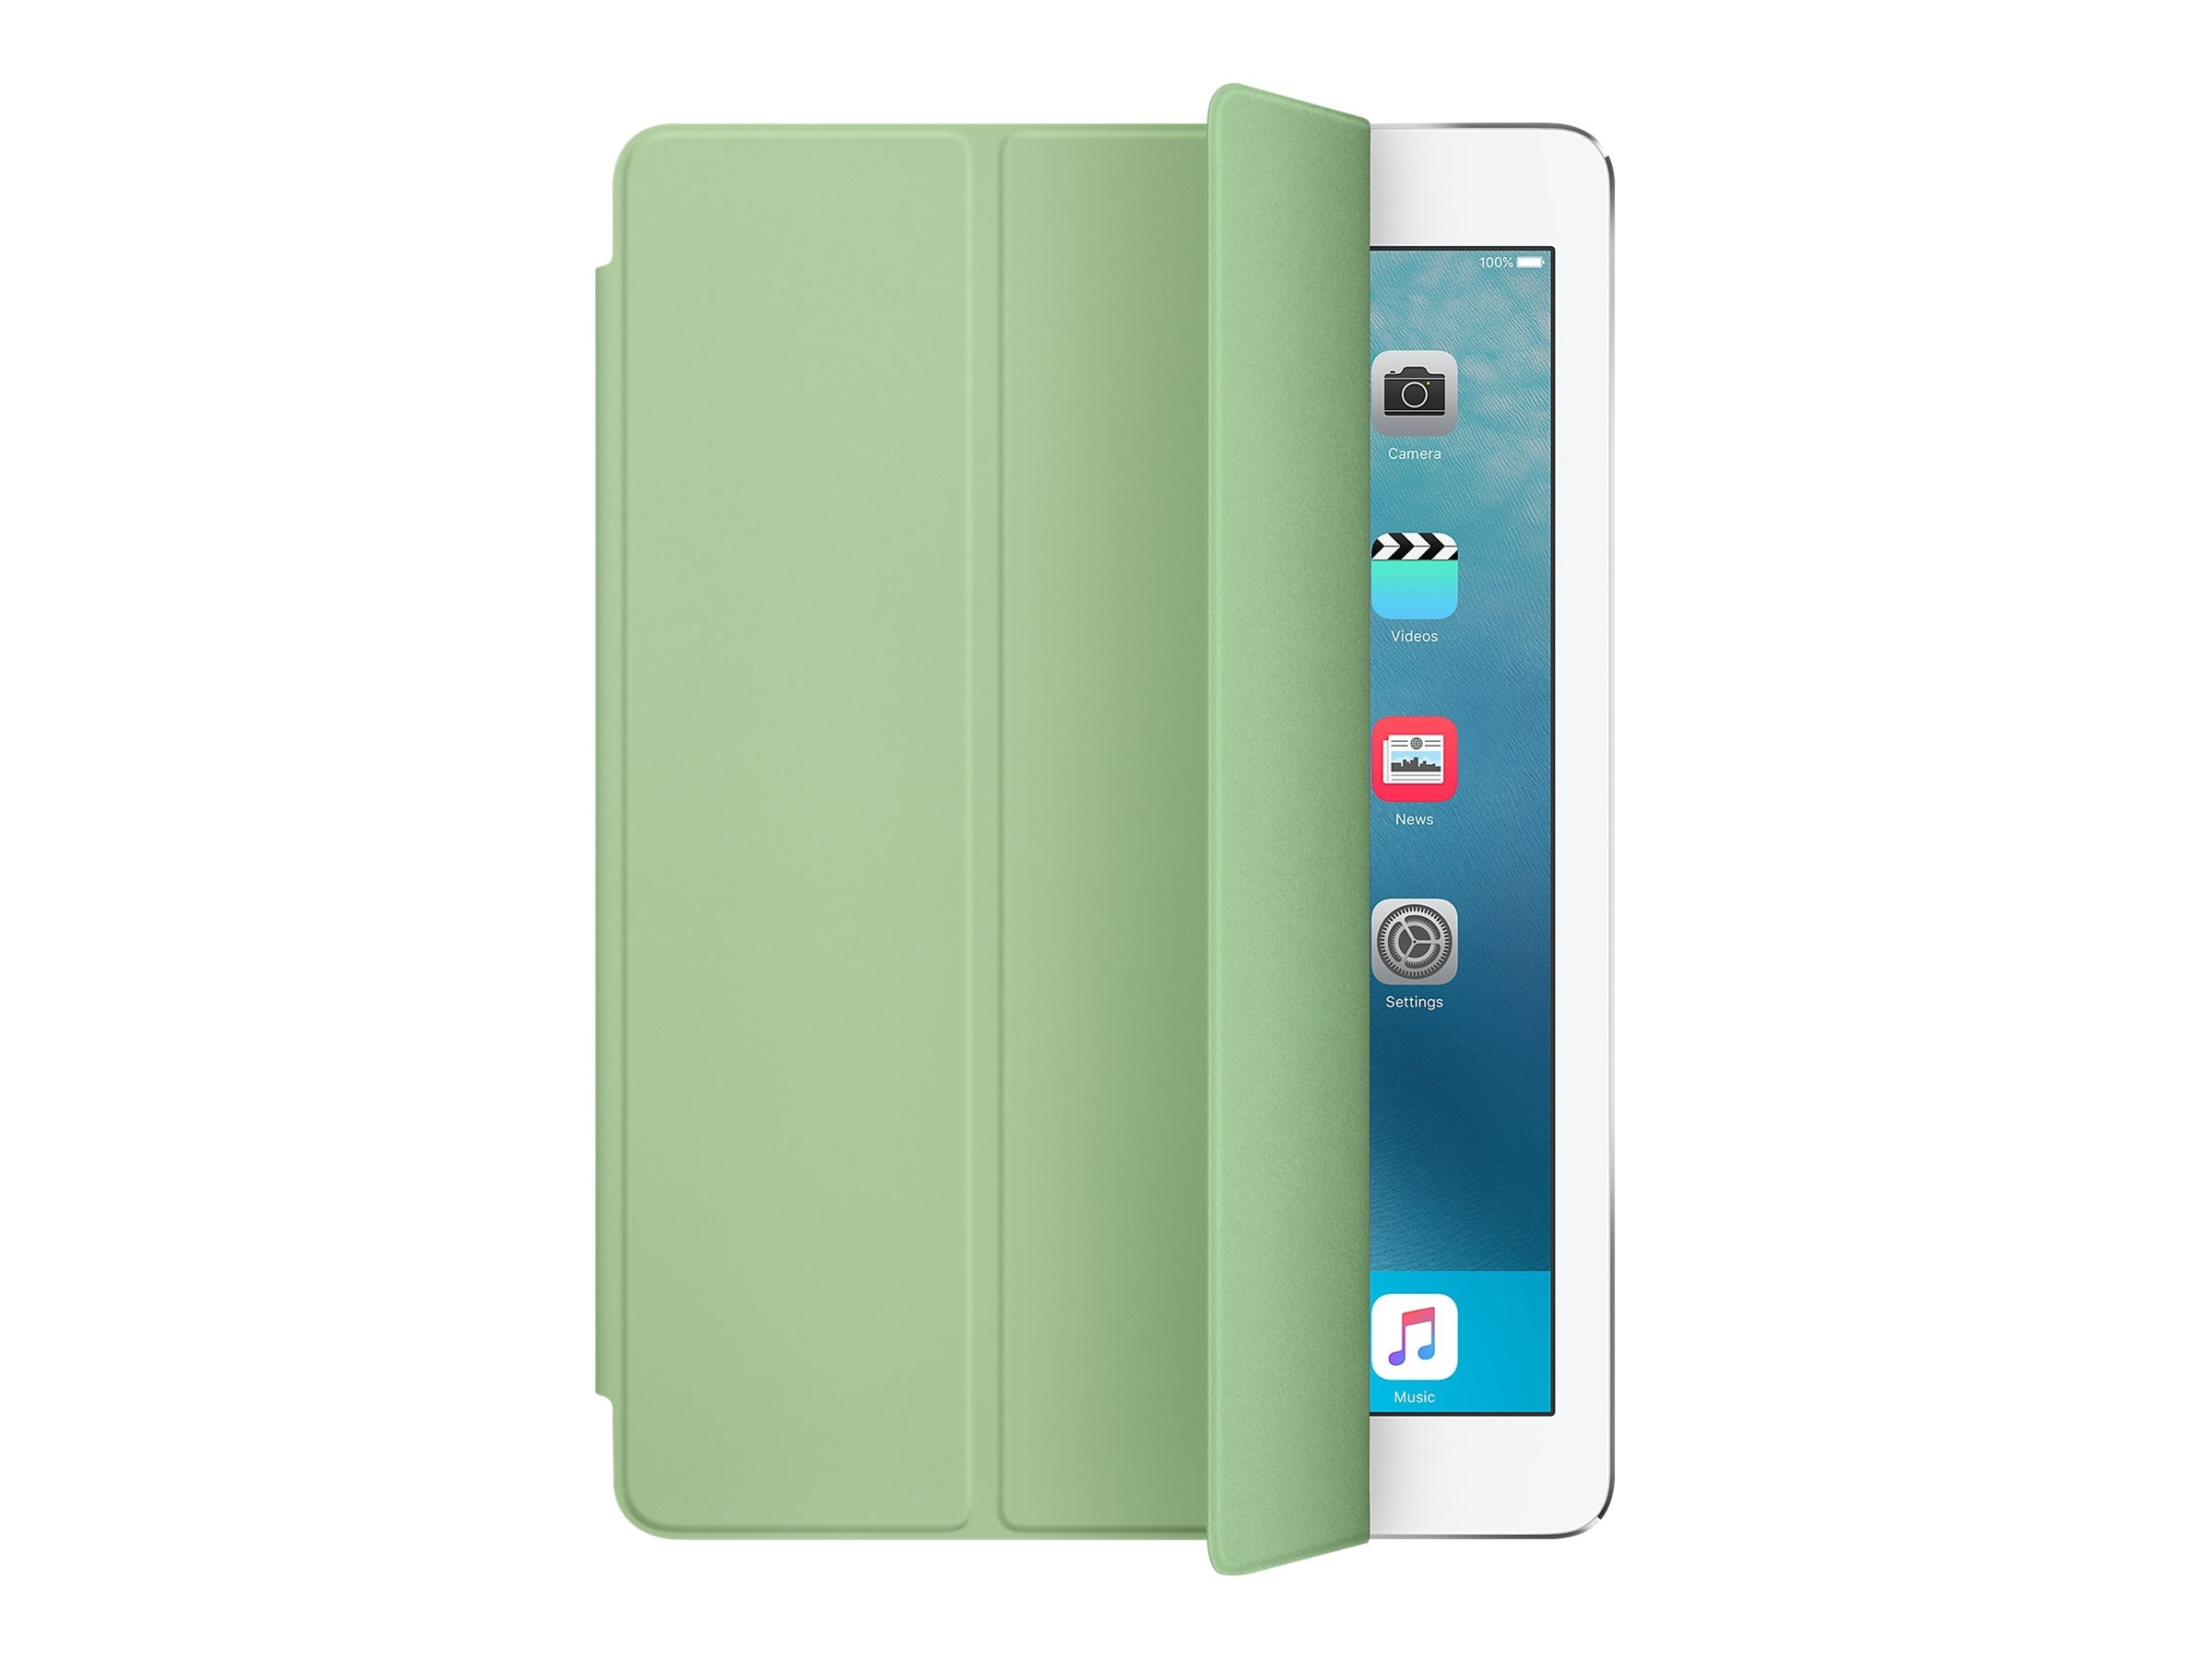 Apple Smart Cover for iPad Pro 9.7, Mint, MMG62AM/A, 31812319, Carrying Cases - Tablets & eReaders